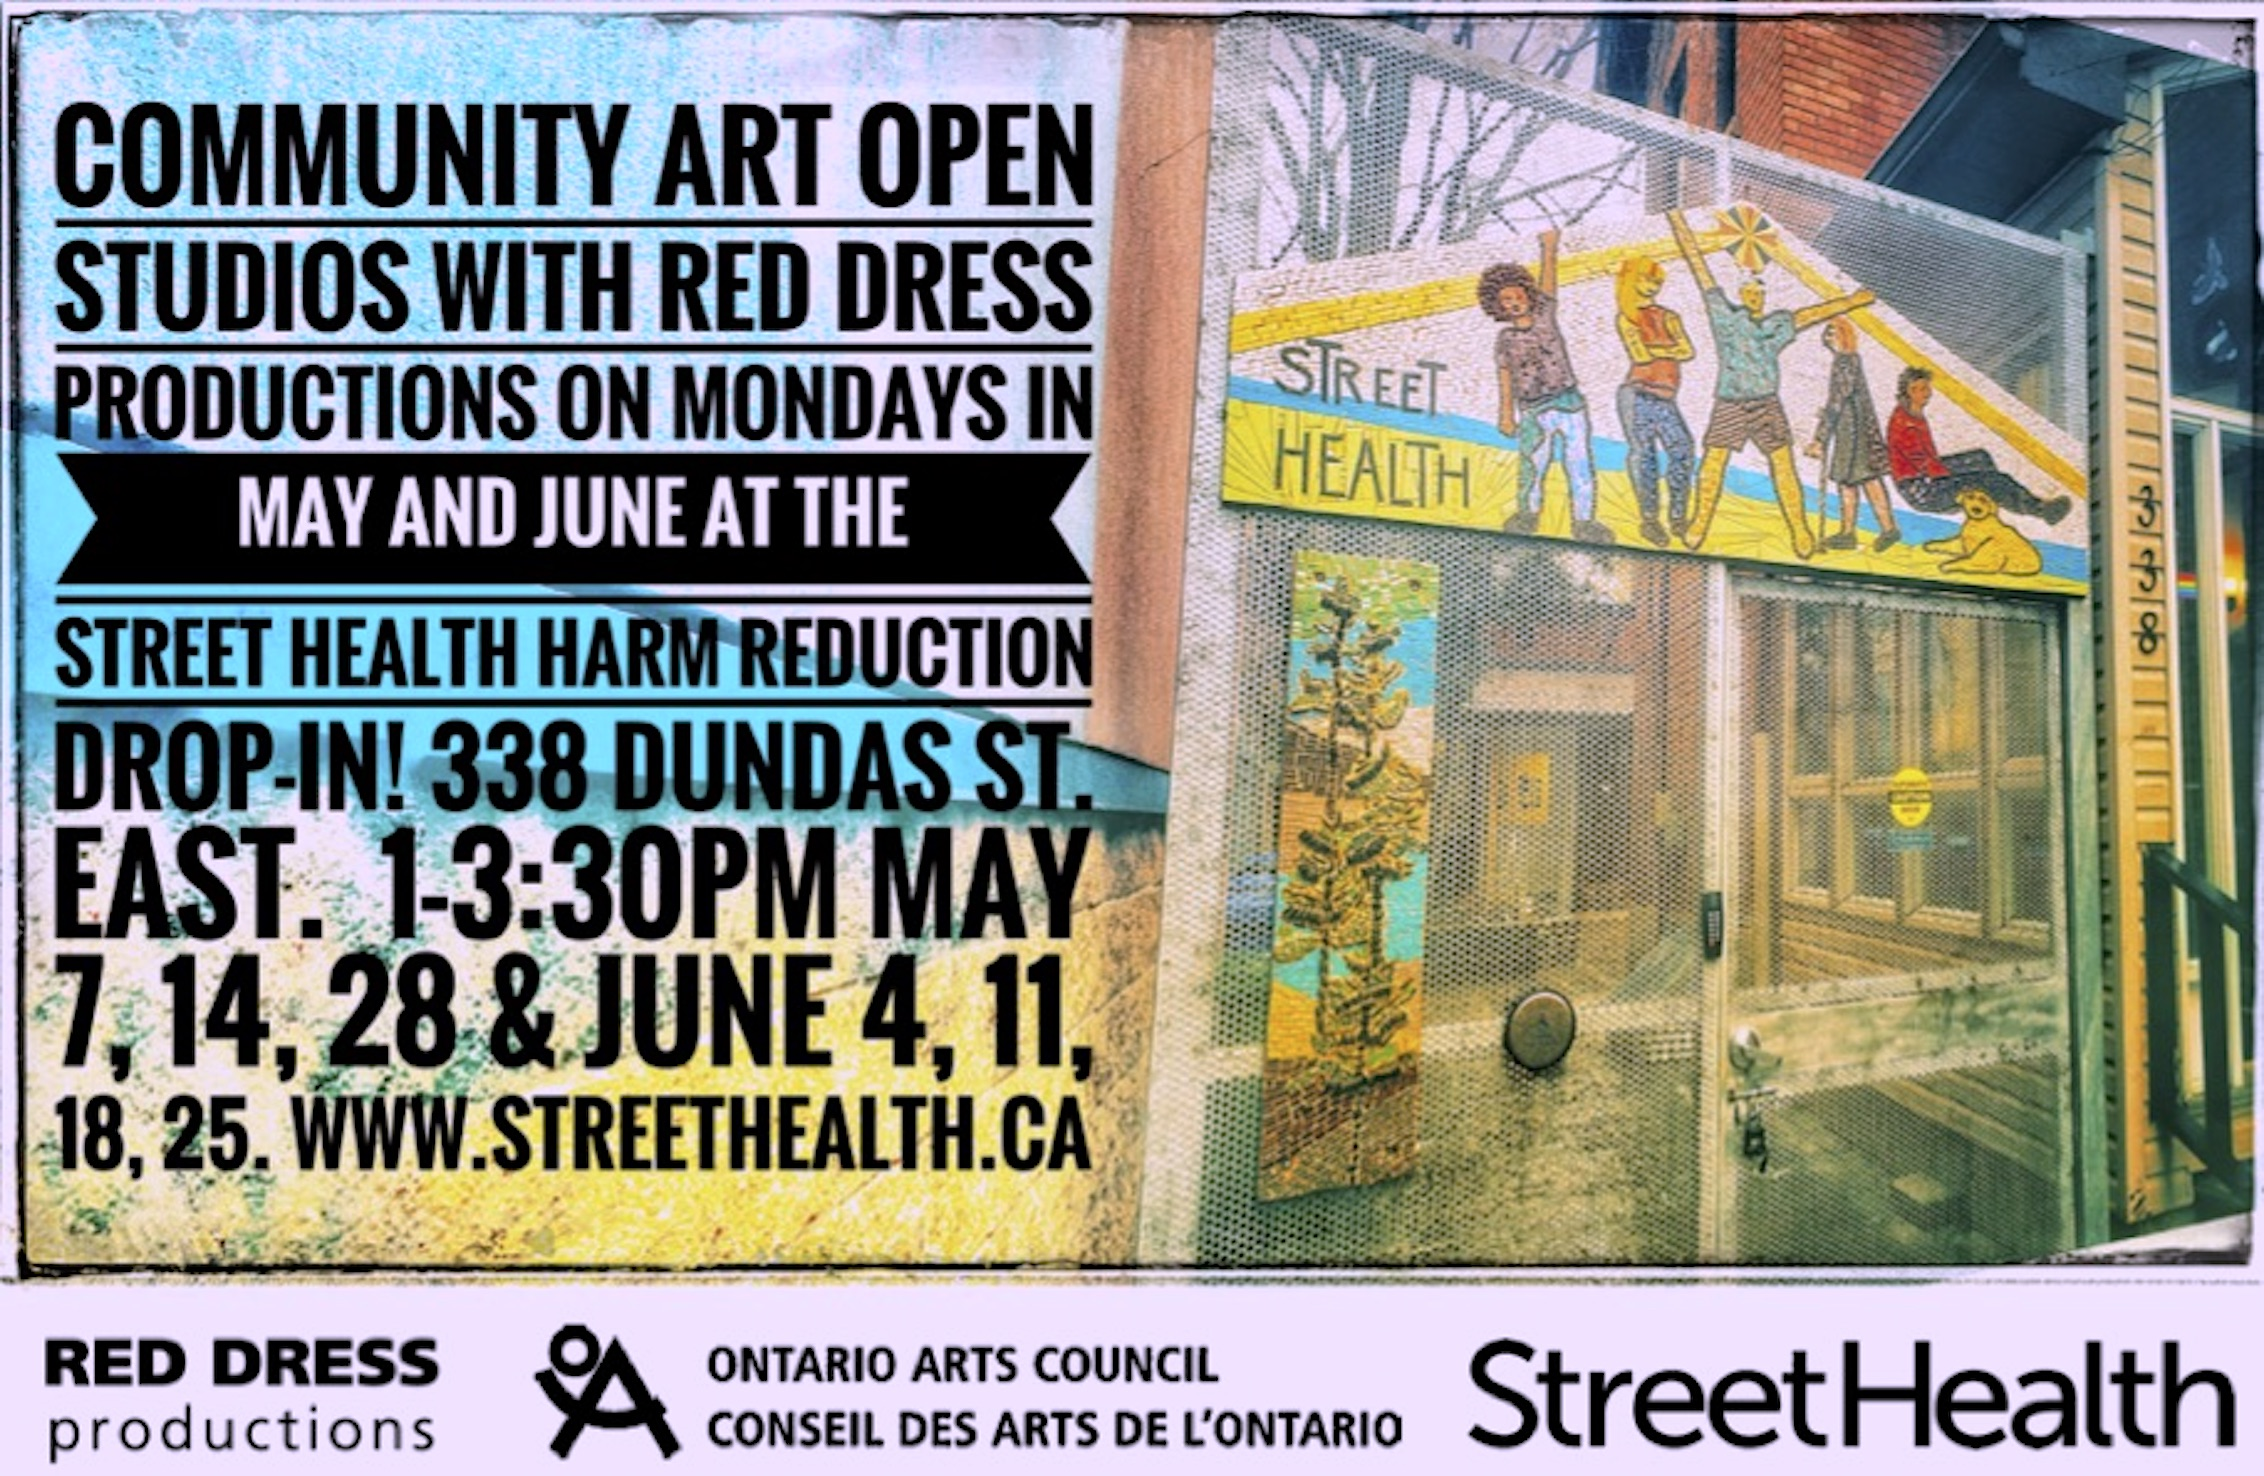 A flyer shows an image of an artwork hanging on a gate. The mosaic artwork contains the words Street Health and depicts a group of people. The flyer text reads: Community Art Open Studios with Red Dress Productions on Mondays in May and June at the Street Health harm reduction drop-in - 338 Dundas Street East - 1:30 - 3:30 May 7, 14, 28 and June 4, 11, 18, 25 - www. streethealth.ca